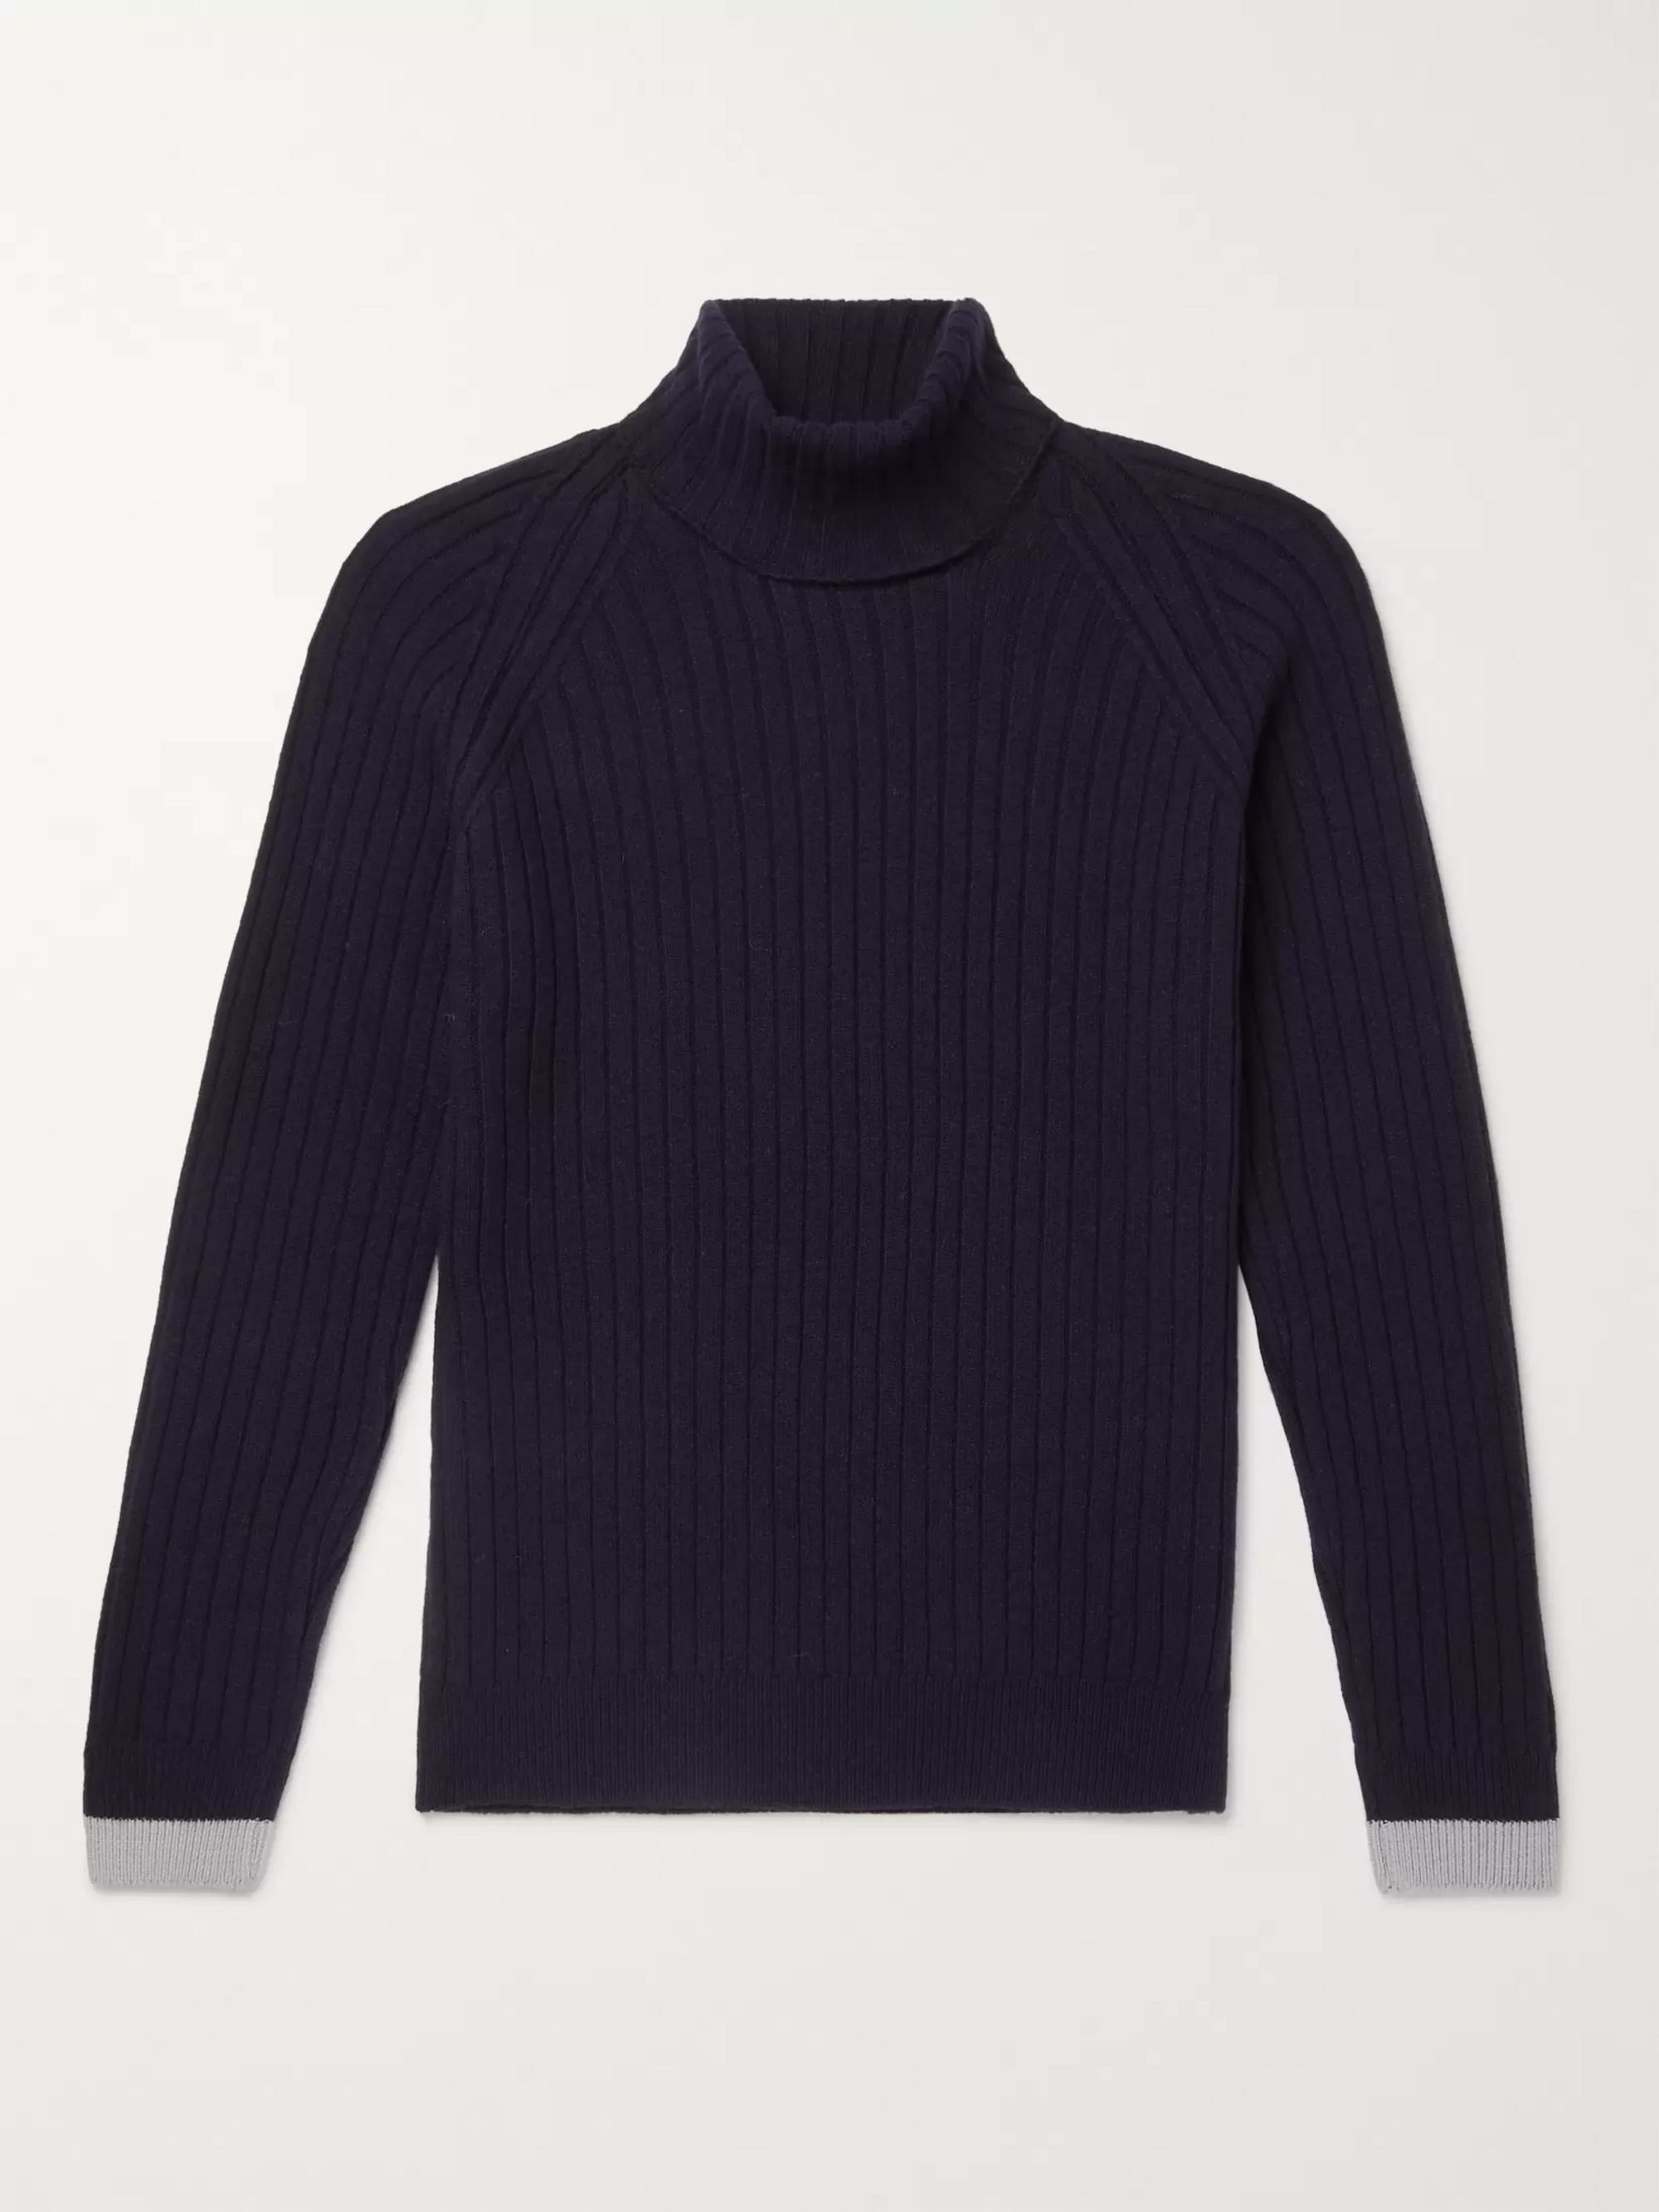 John Smedley Roman Contrast-Tipped Ribbed Merino Wool and Cashmere-Blend Rollneck Sweater